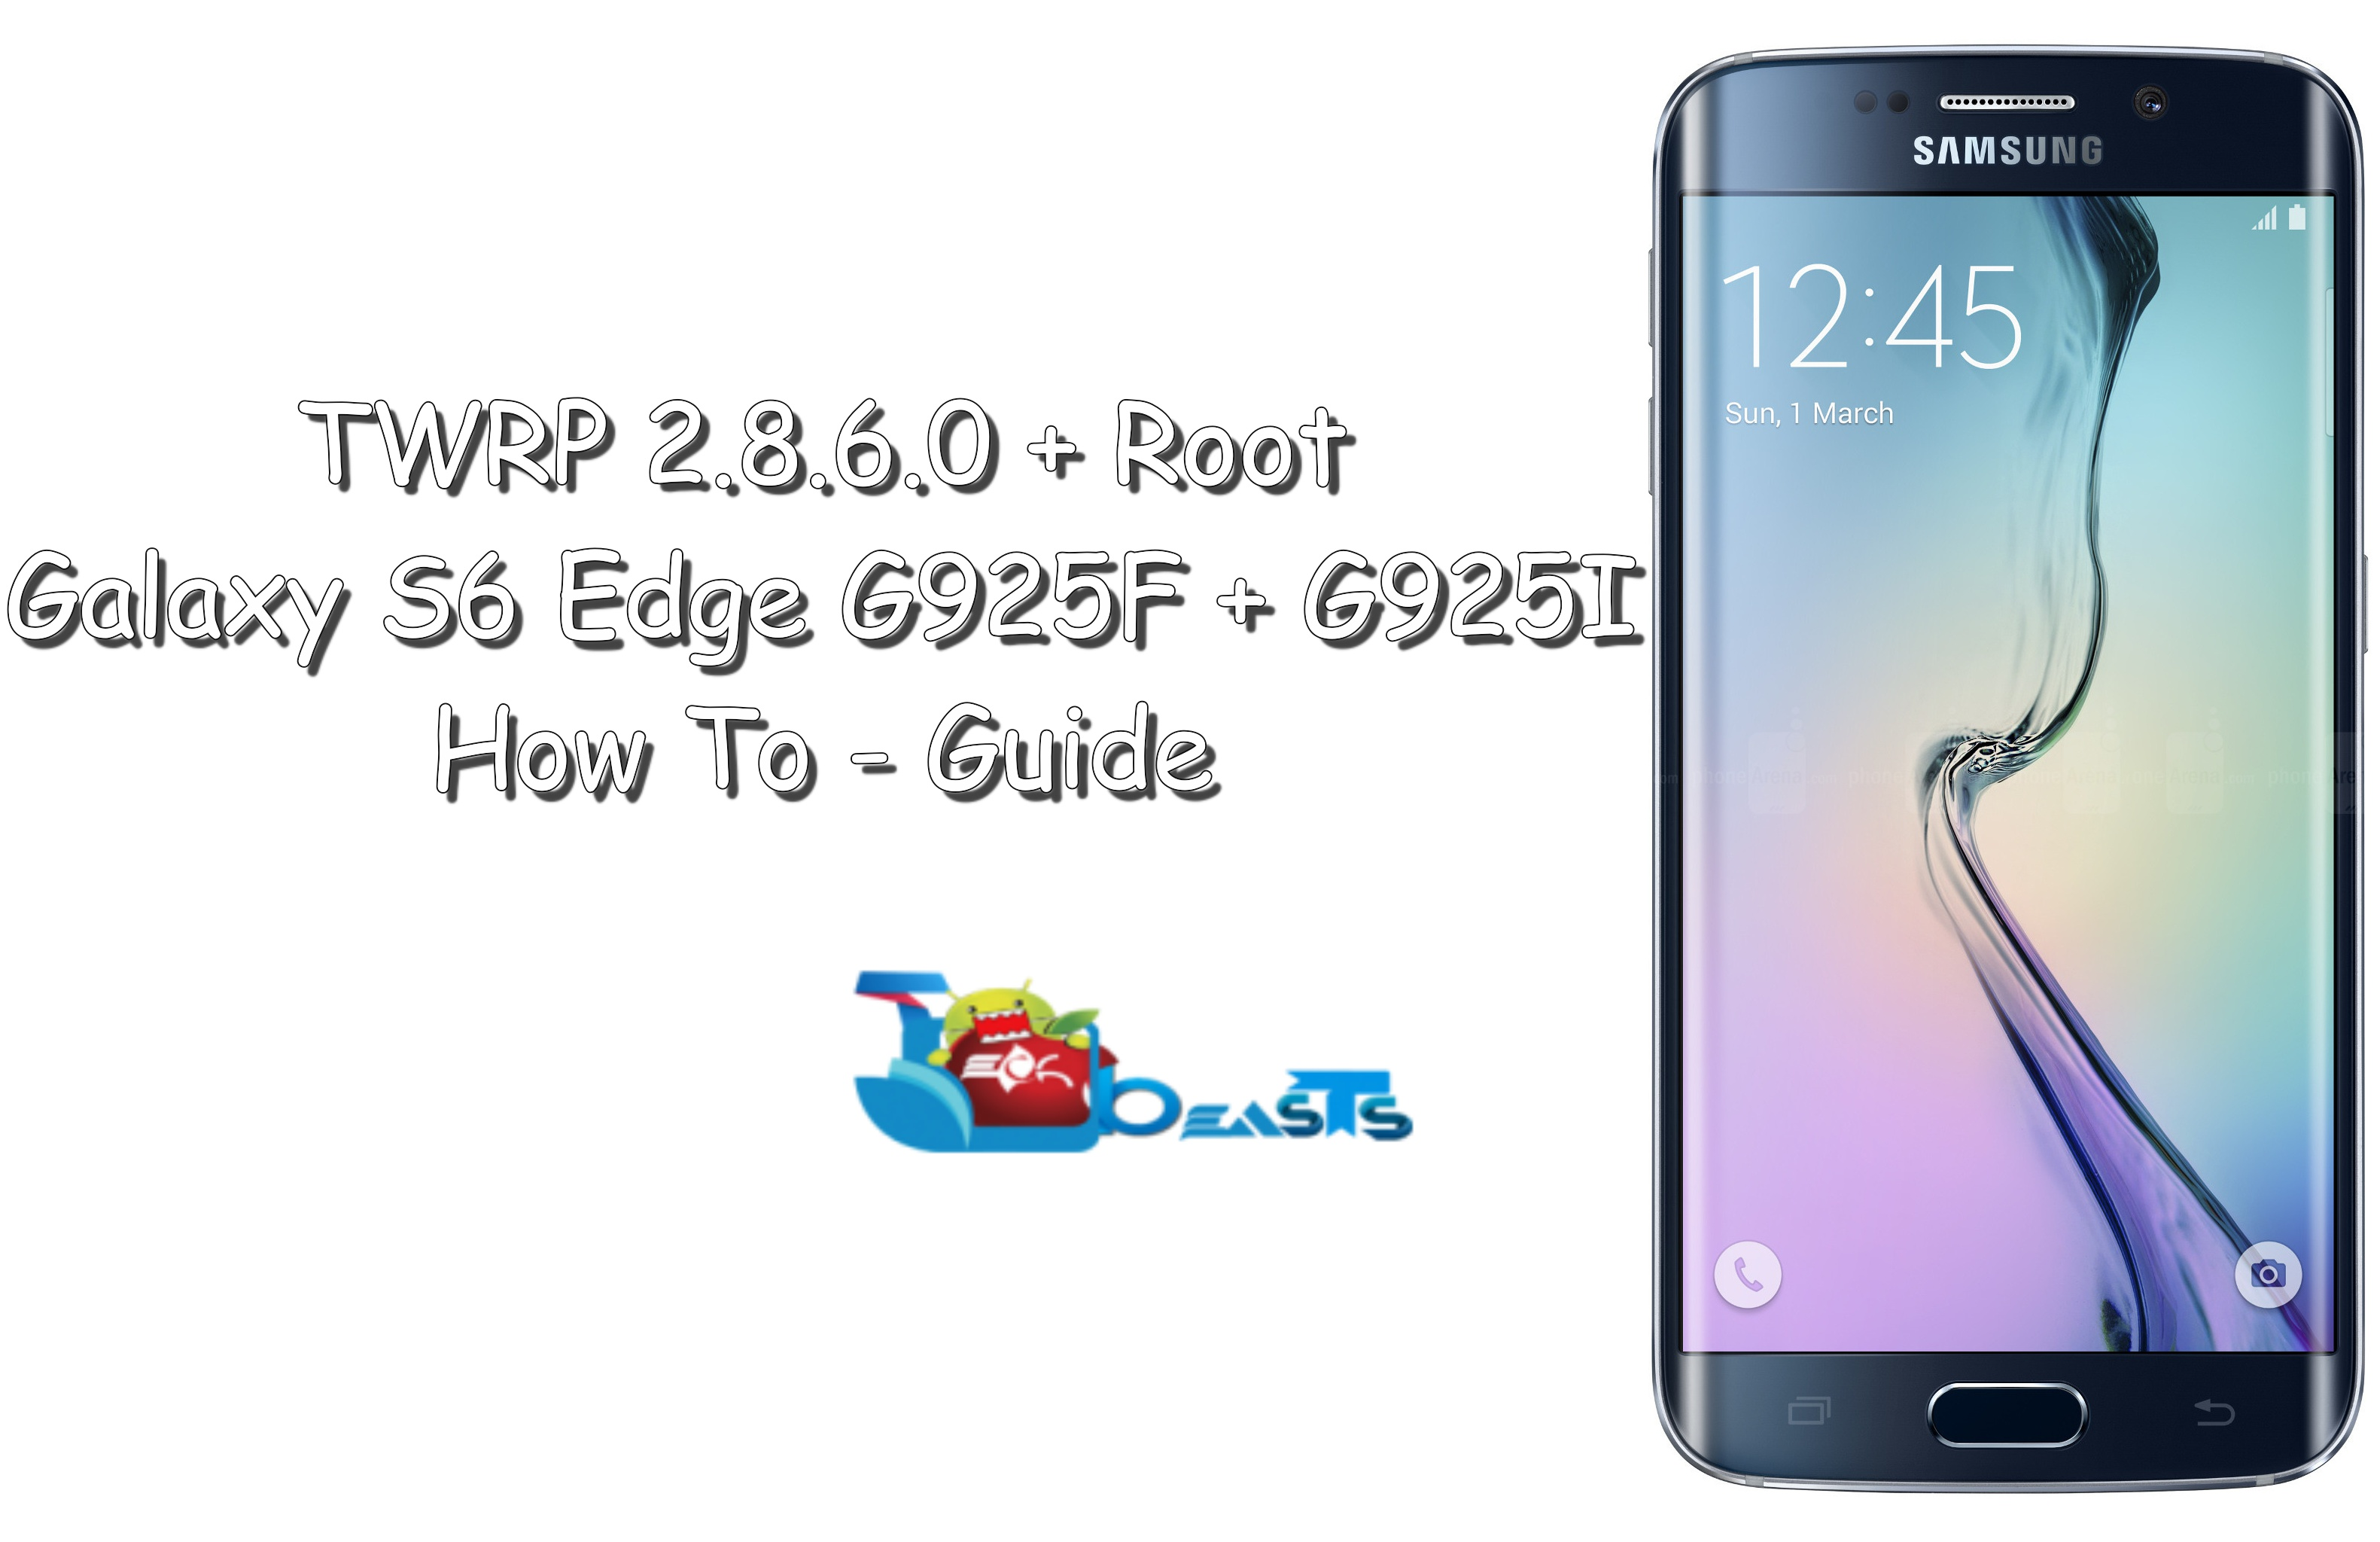 Install TWRP Recovery & Root Galaxy S6 Edge G925F, G925I